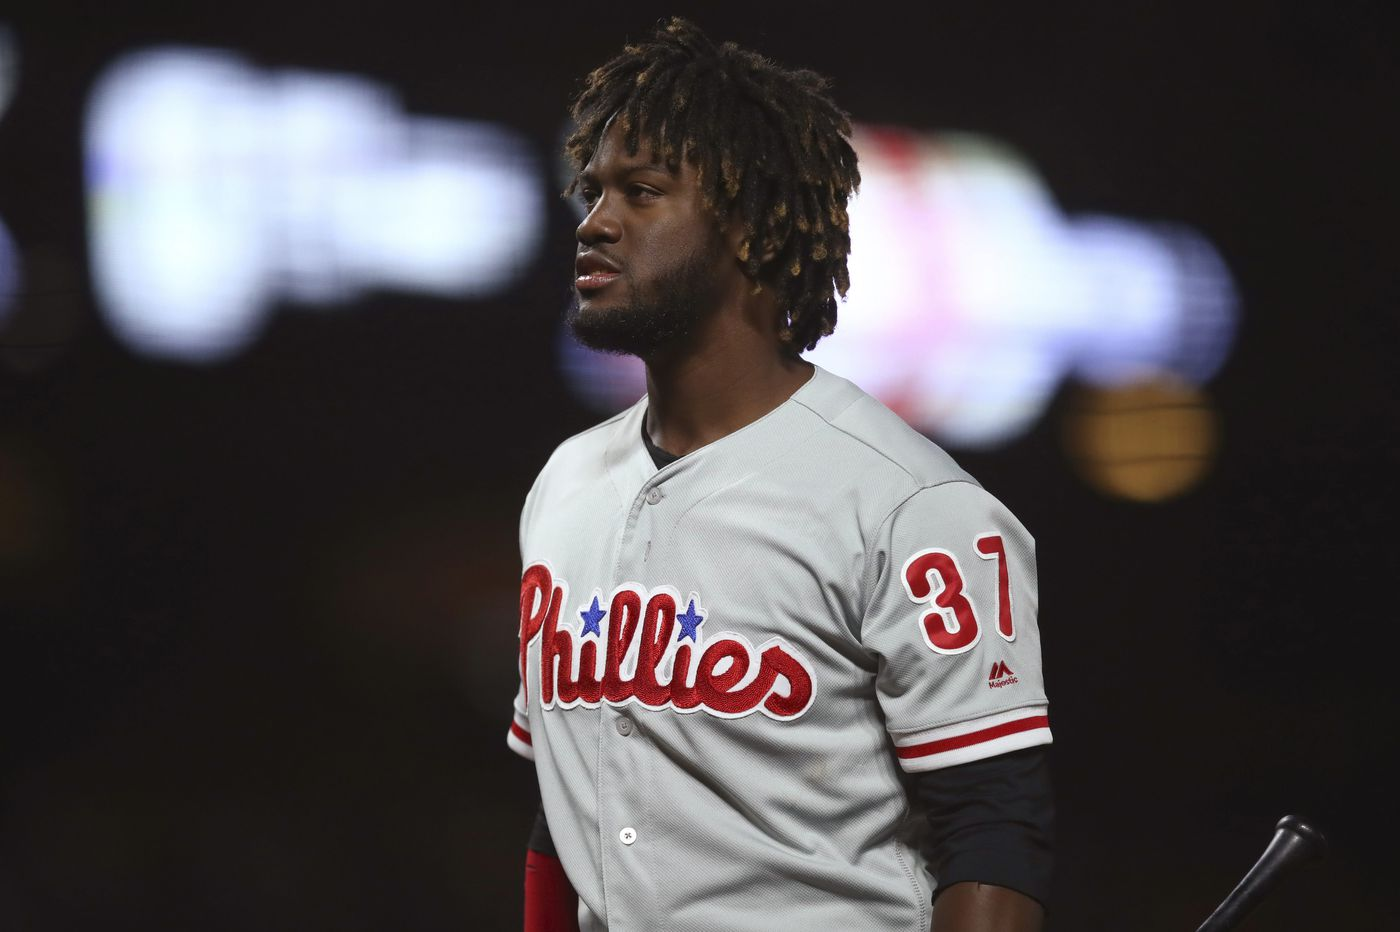 Nick Pivetta chased early in Phillies' listless loss to Giants